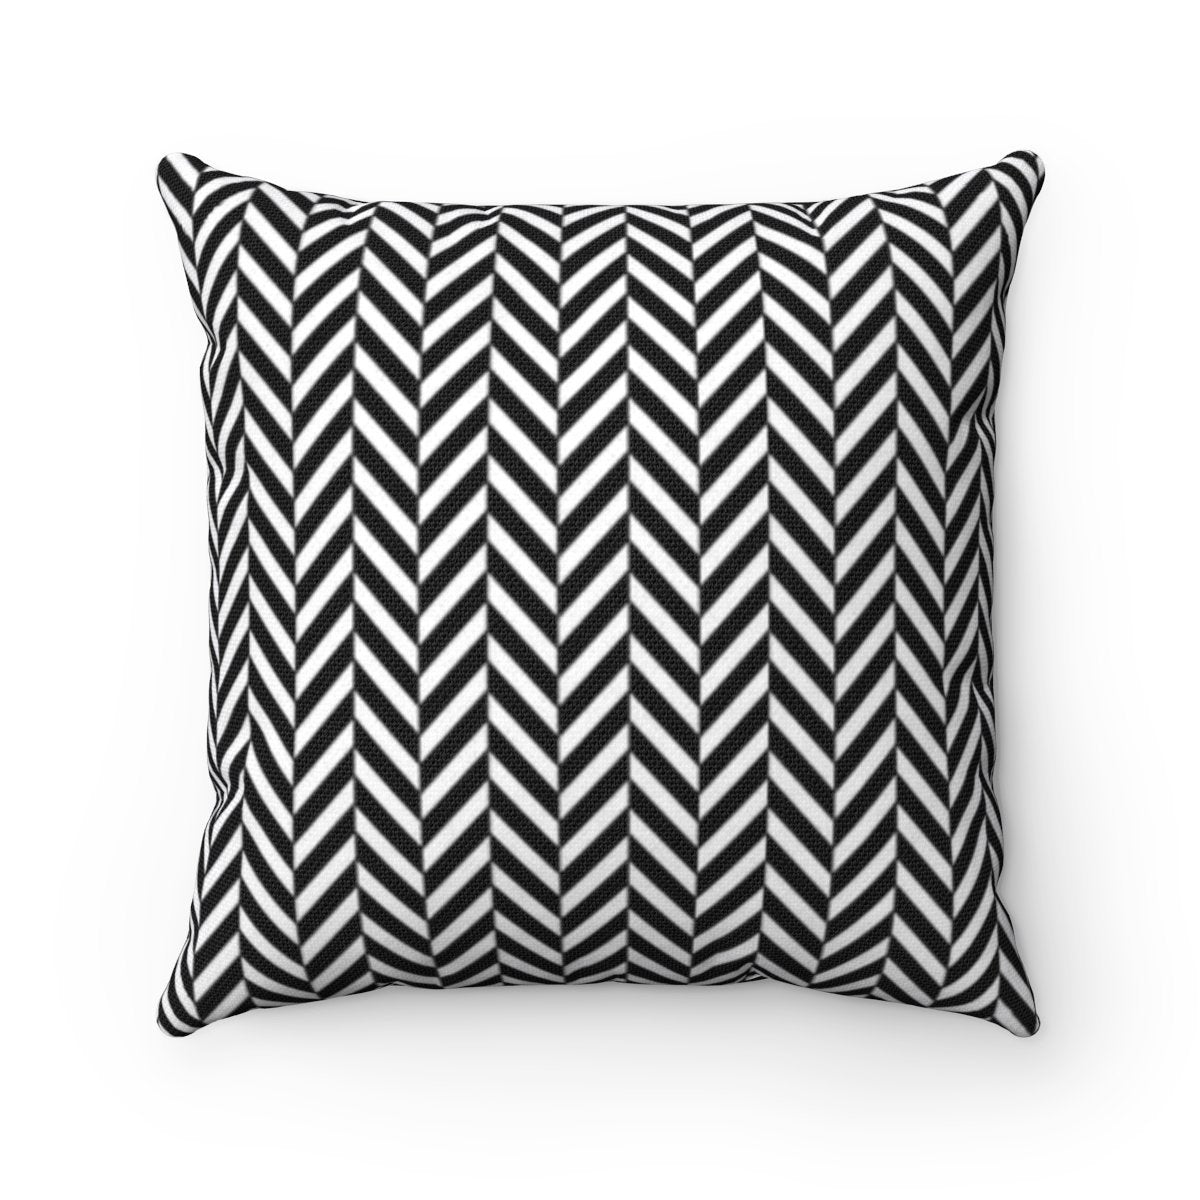 Striped and herringbone 2 in 1 decorative cushion cover-Home Decor - Decorative Accents - Pillows & Throws - Decorative Pillows-Maison d'Elite-14x14-Très Elite